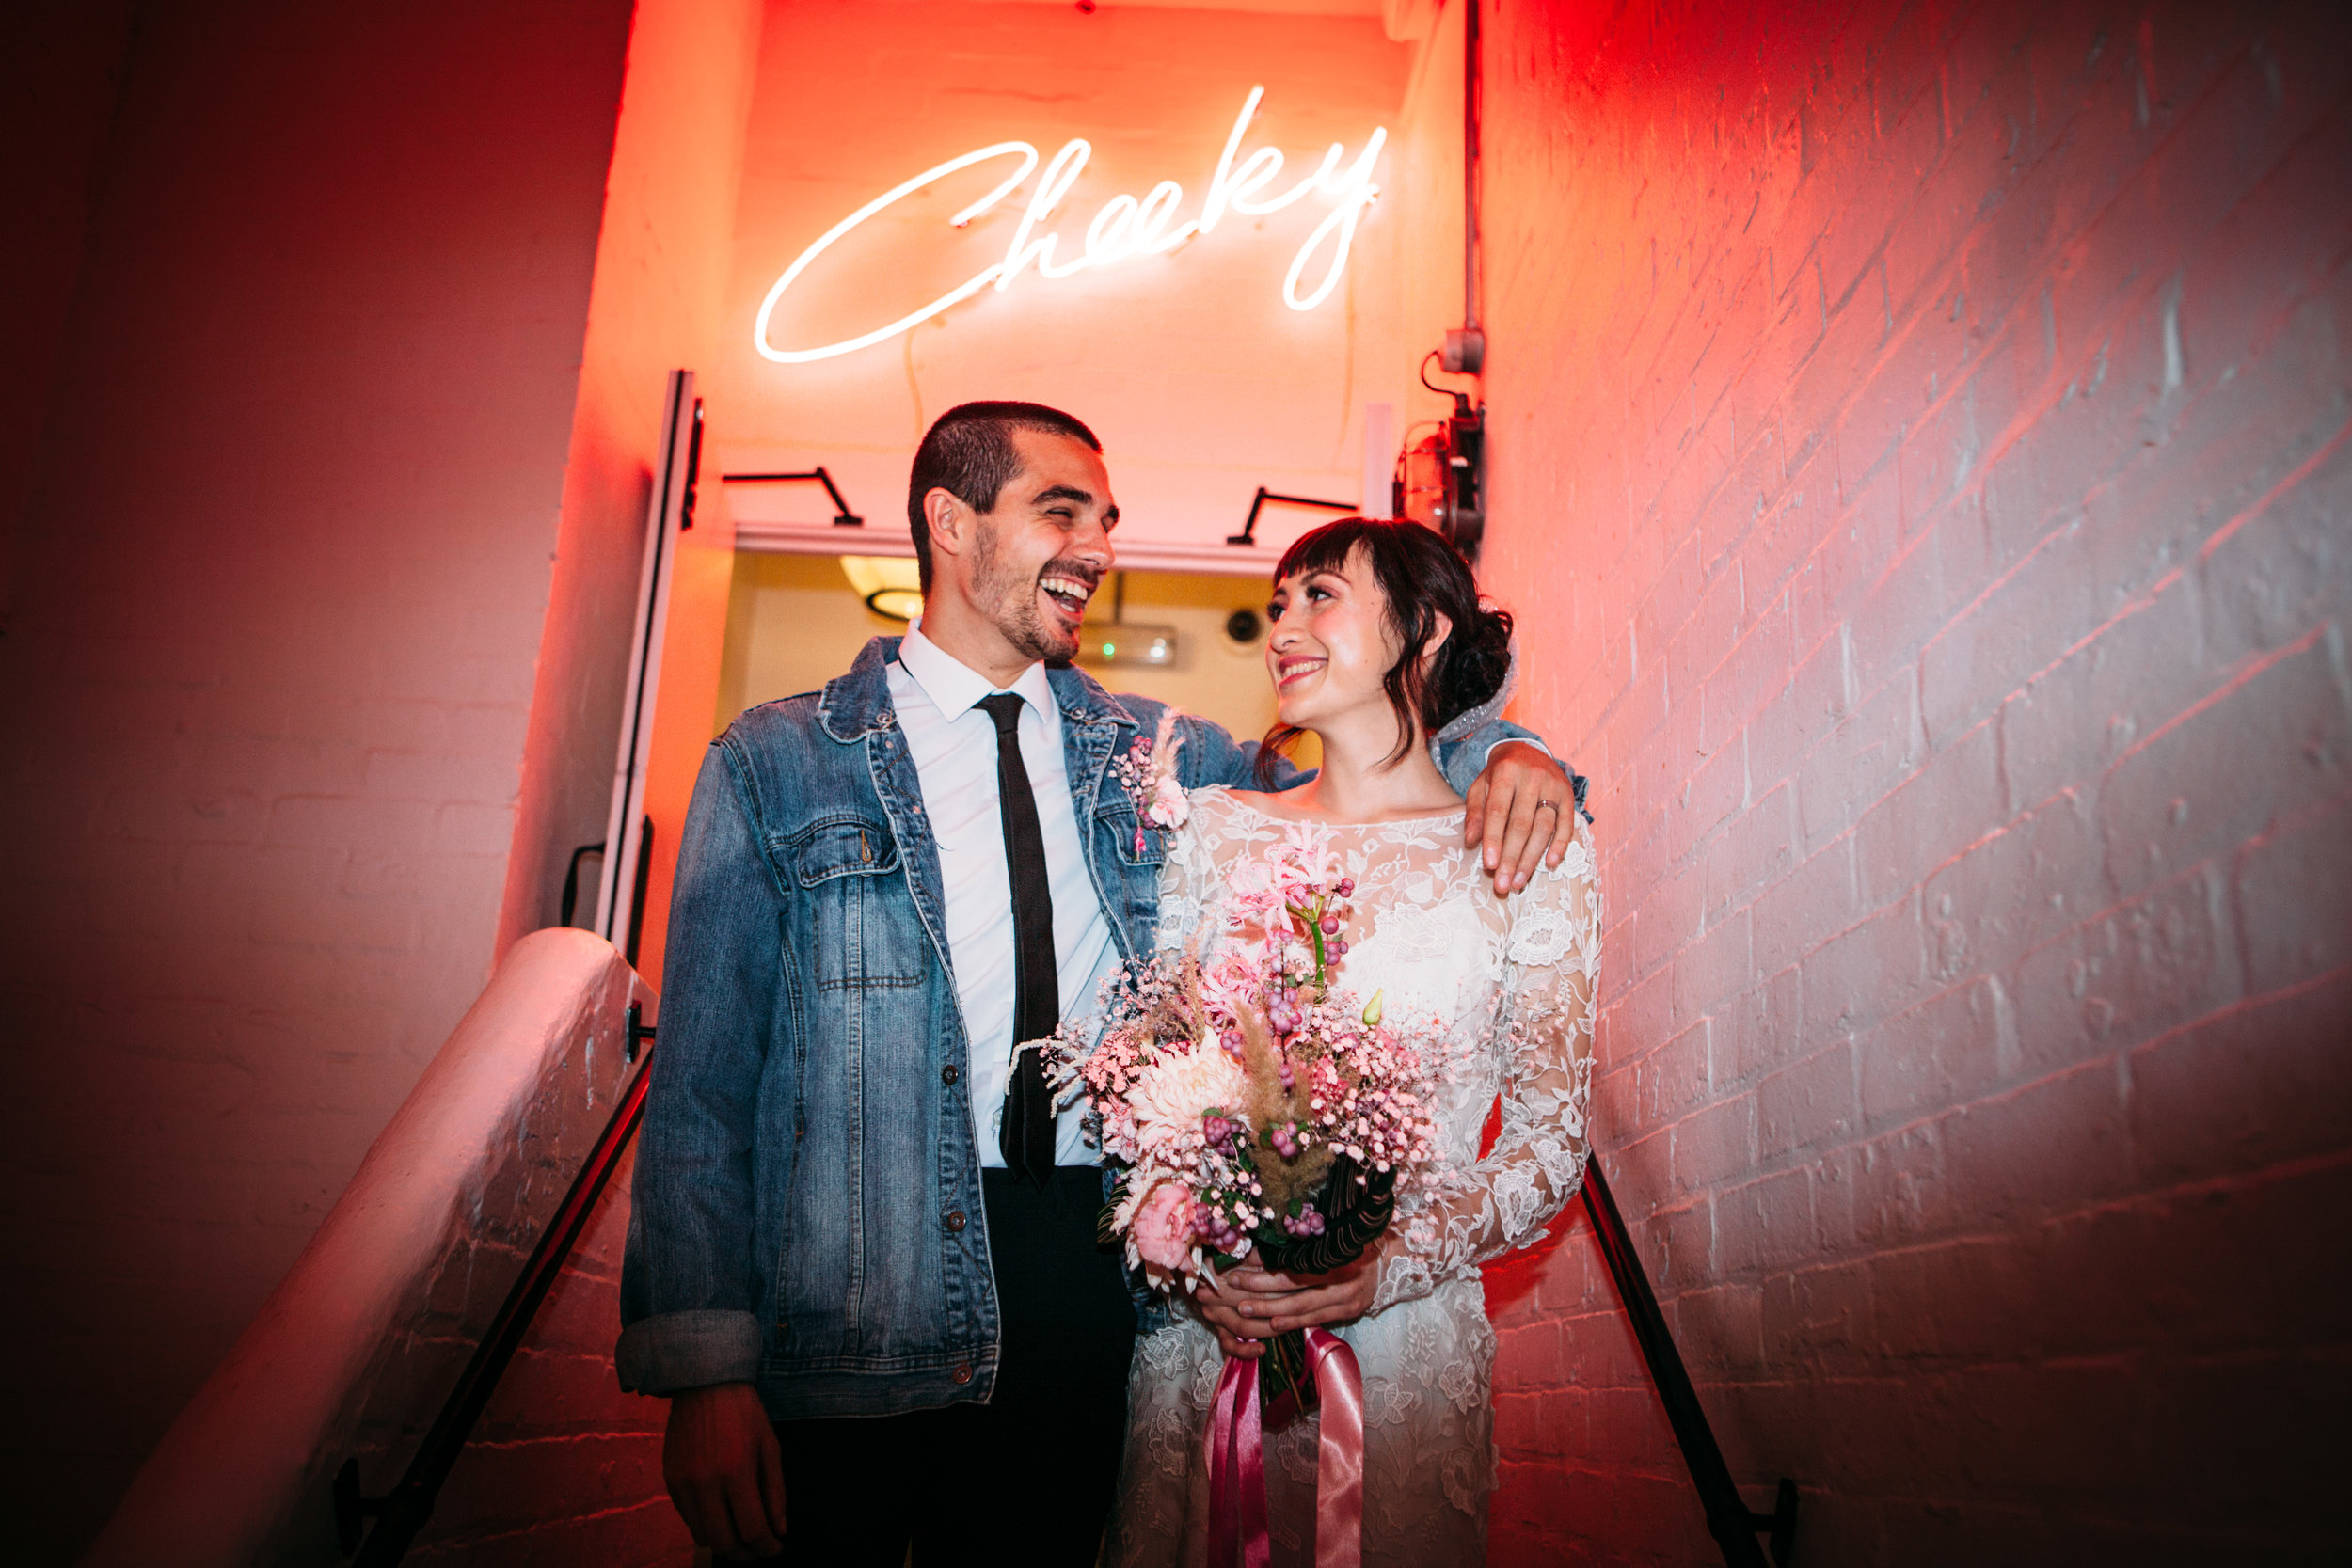 Grit and Glam Pink Shoreditch Elopement 00035.jpg